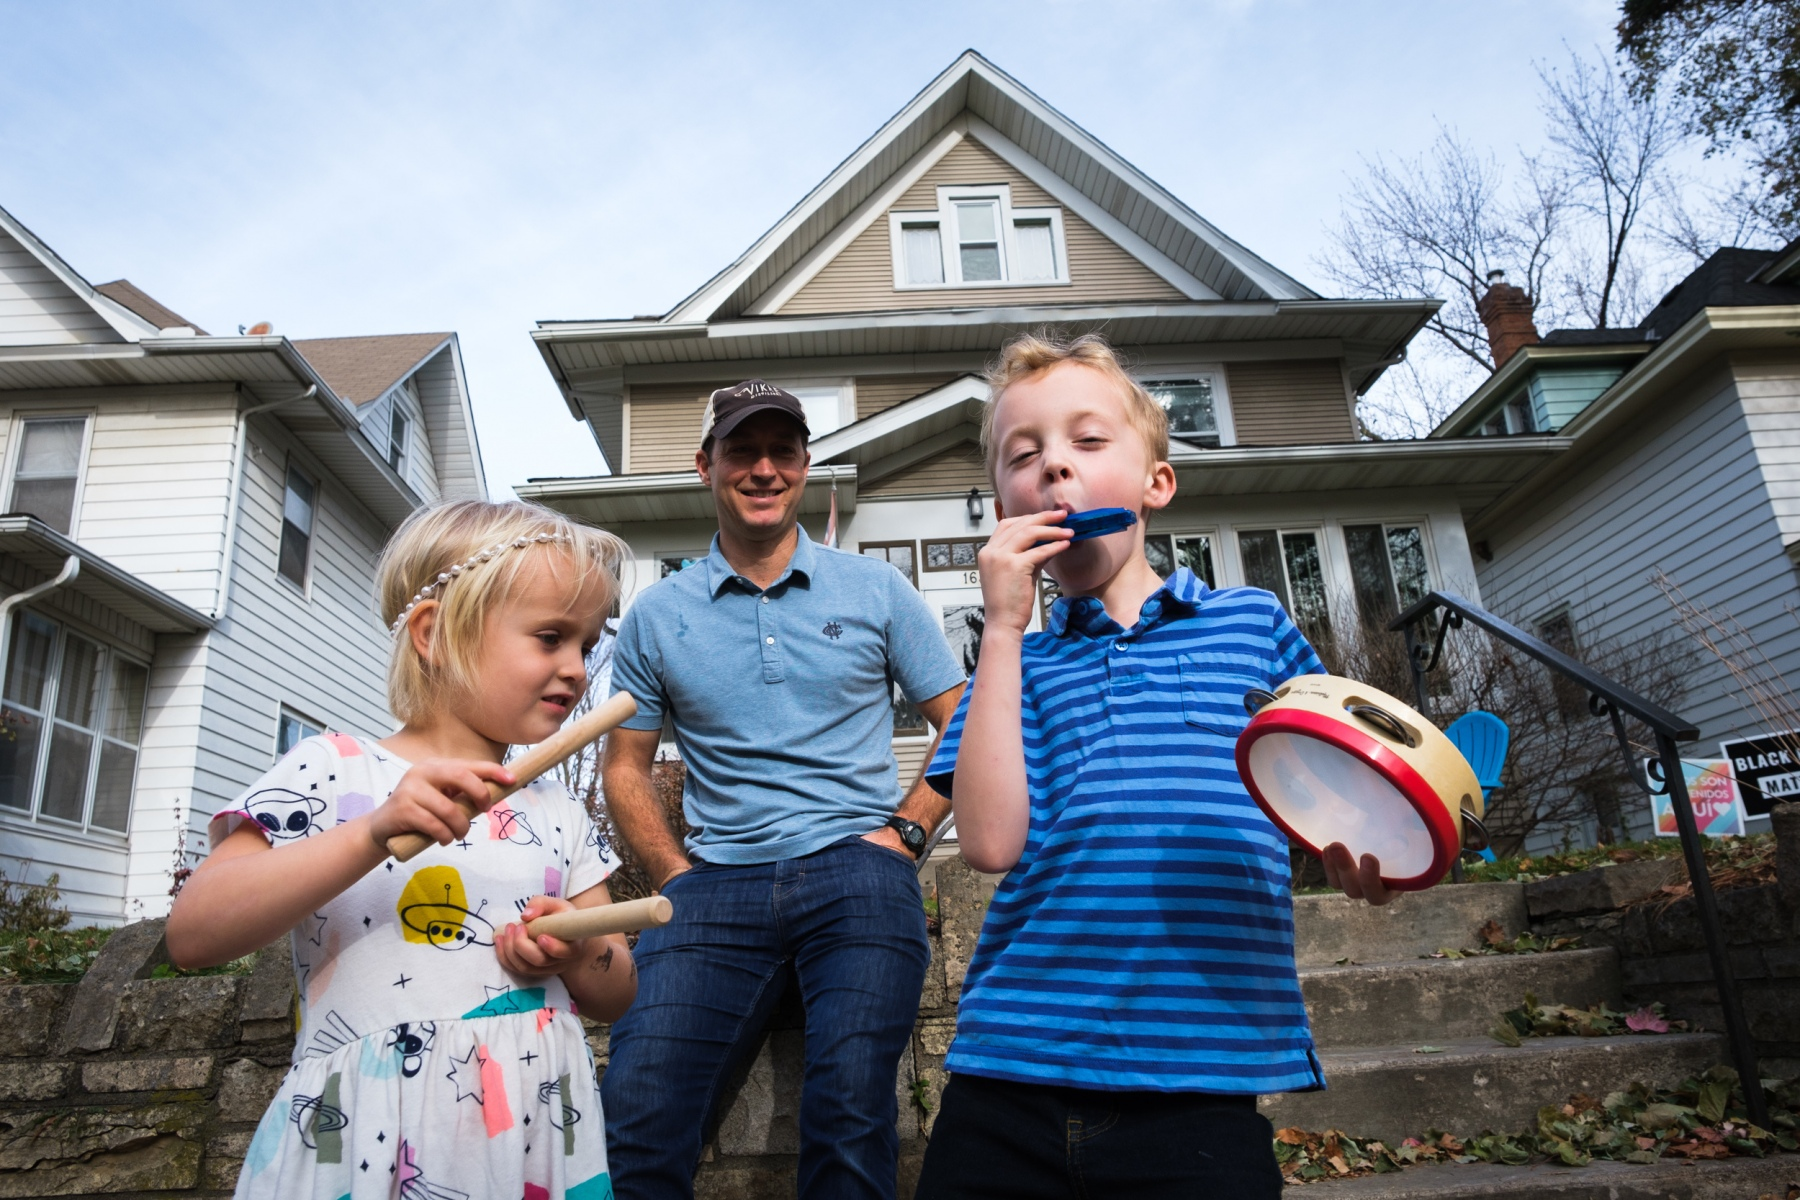 Endre and Silje Nelson play instruments on the sidewalk outside their house in Saint Paul after hearing that Joe Biden was declared the winner of the 2020 presidential election, while their father, Haakon Nelson, watches in the background on November 7, 2020.